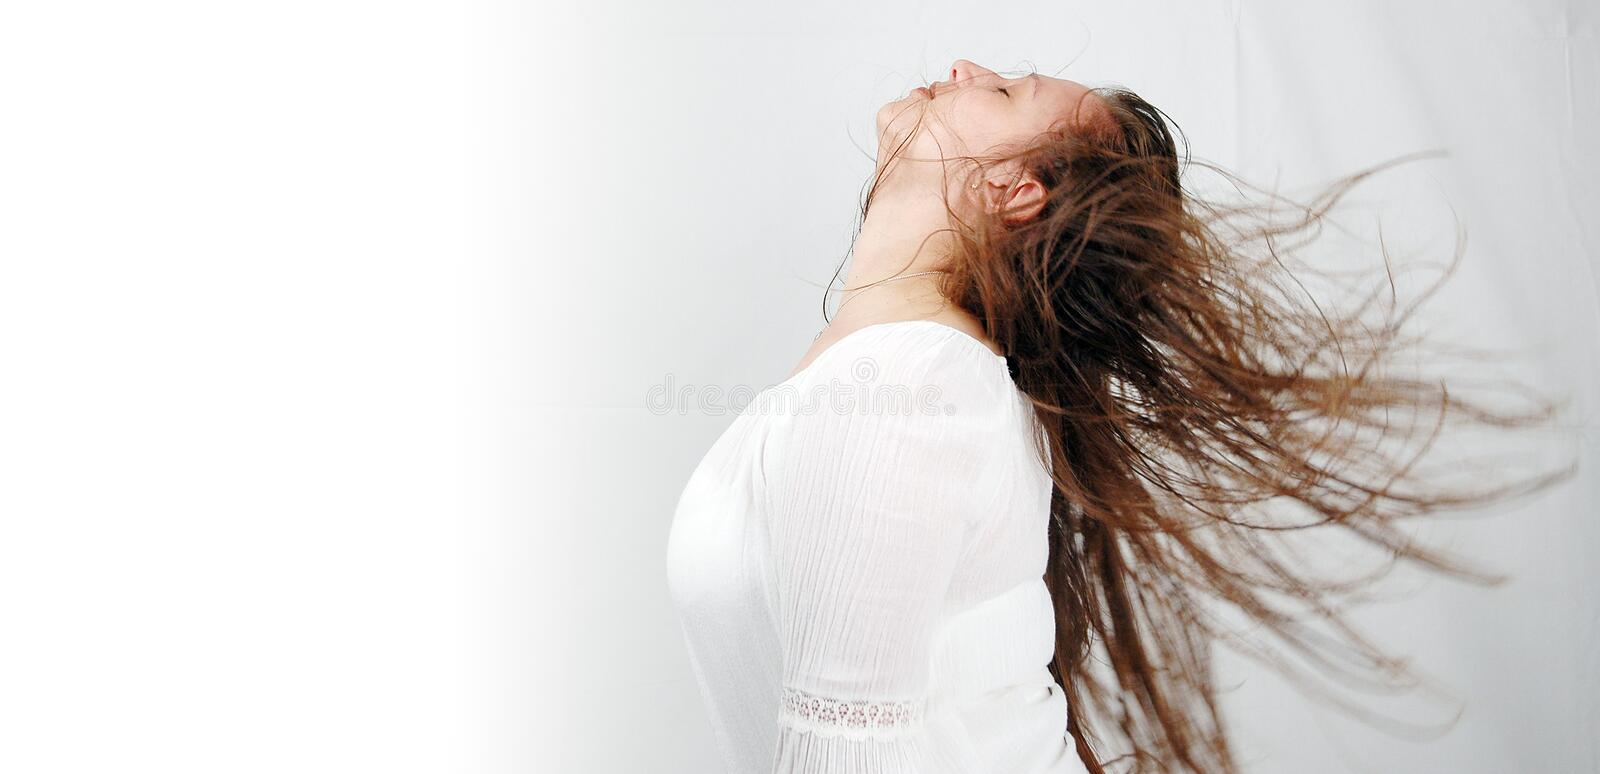 Hair dance-2 royalty free stock image